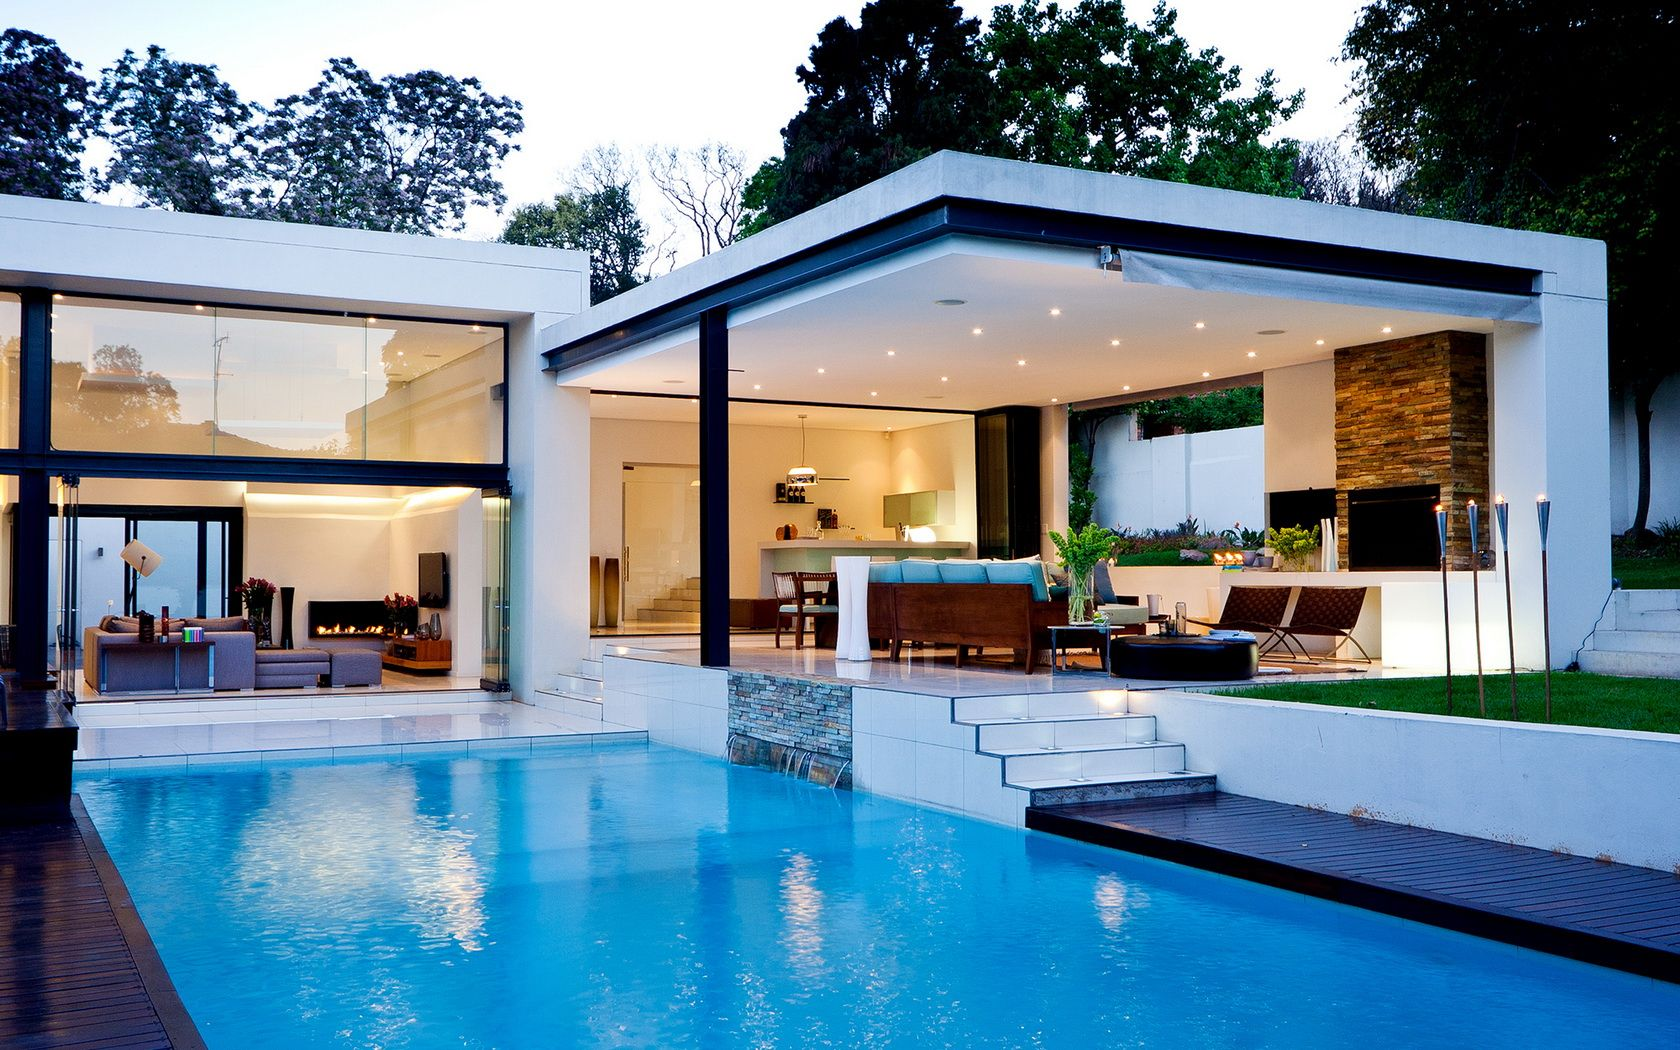 Modern White Nuance Home Plans Over Water That Has Warm Lighting And White  Wall Can Add